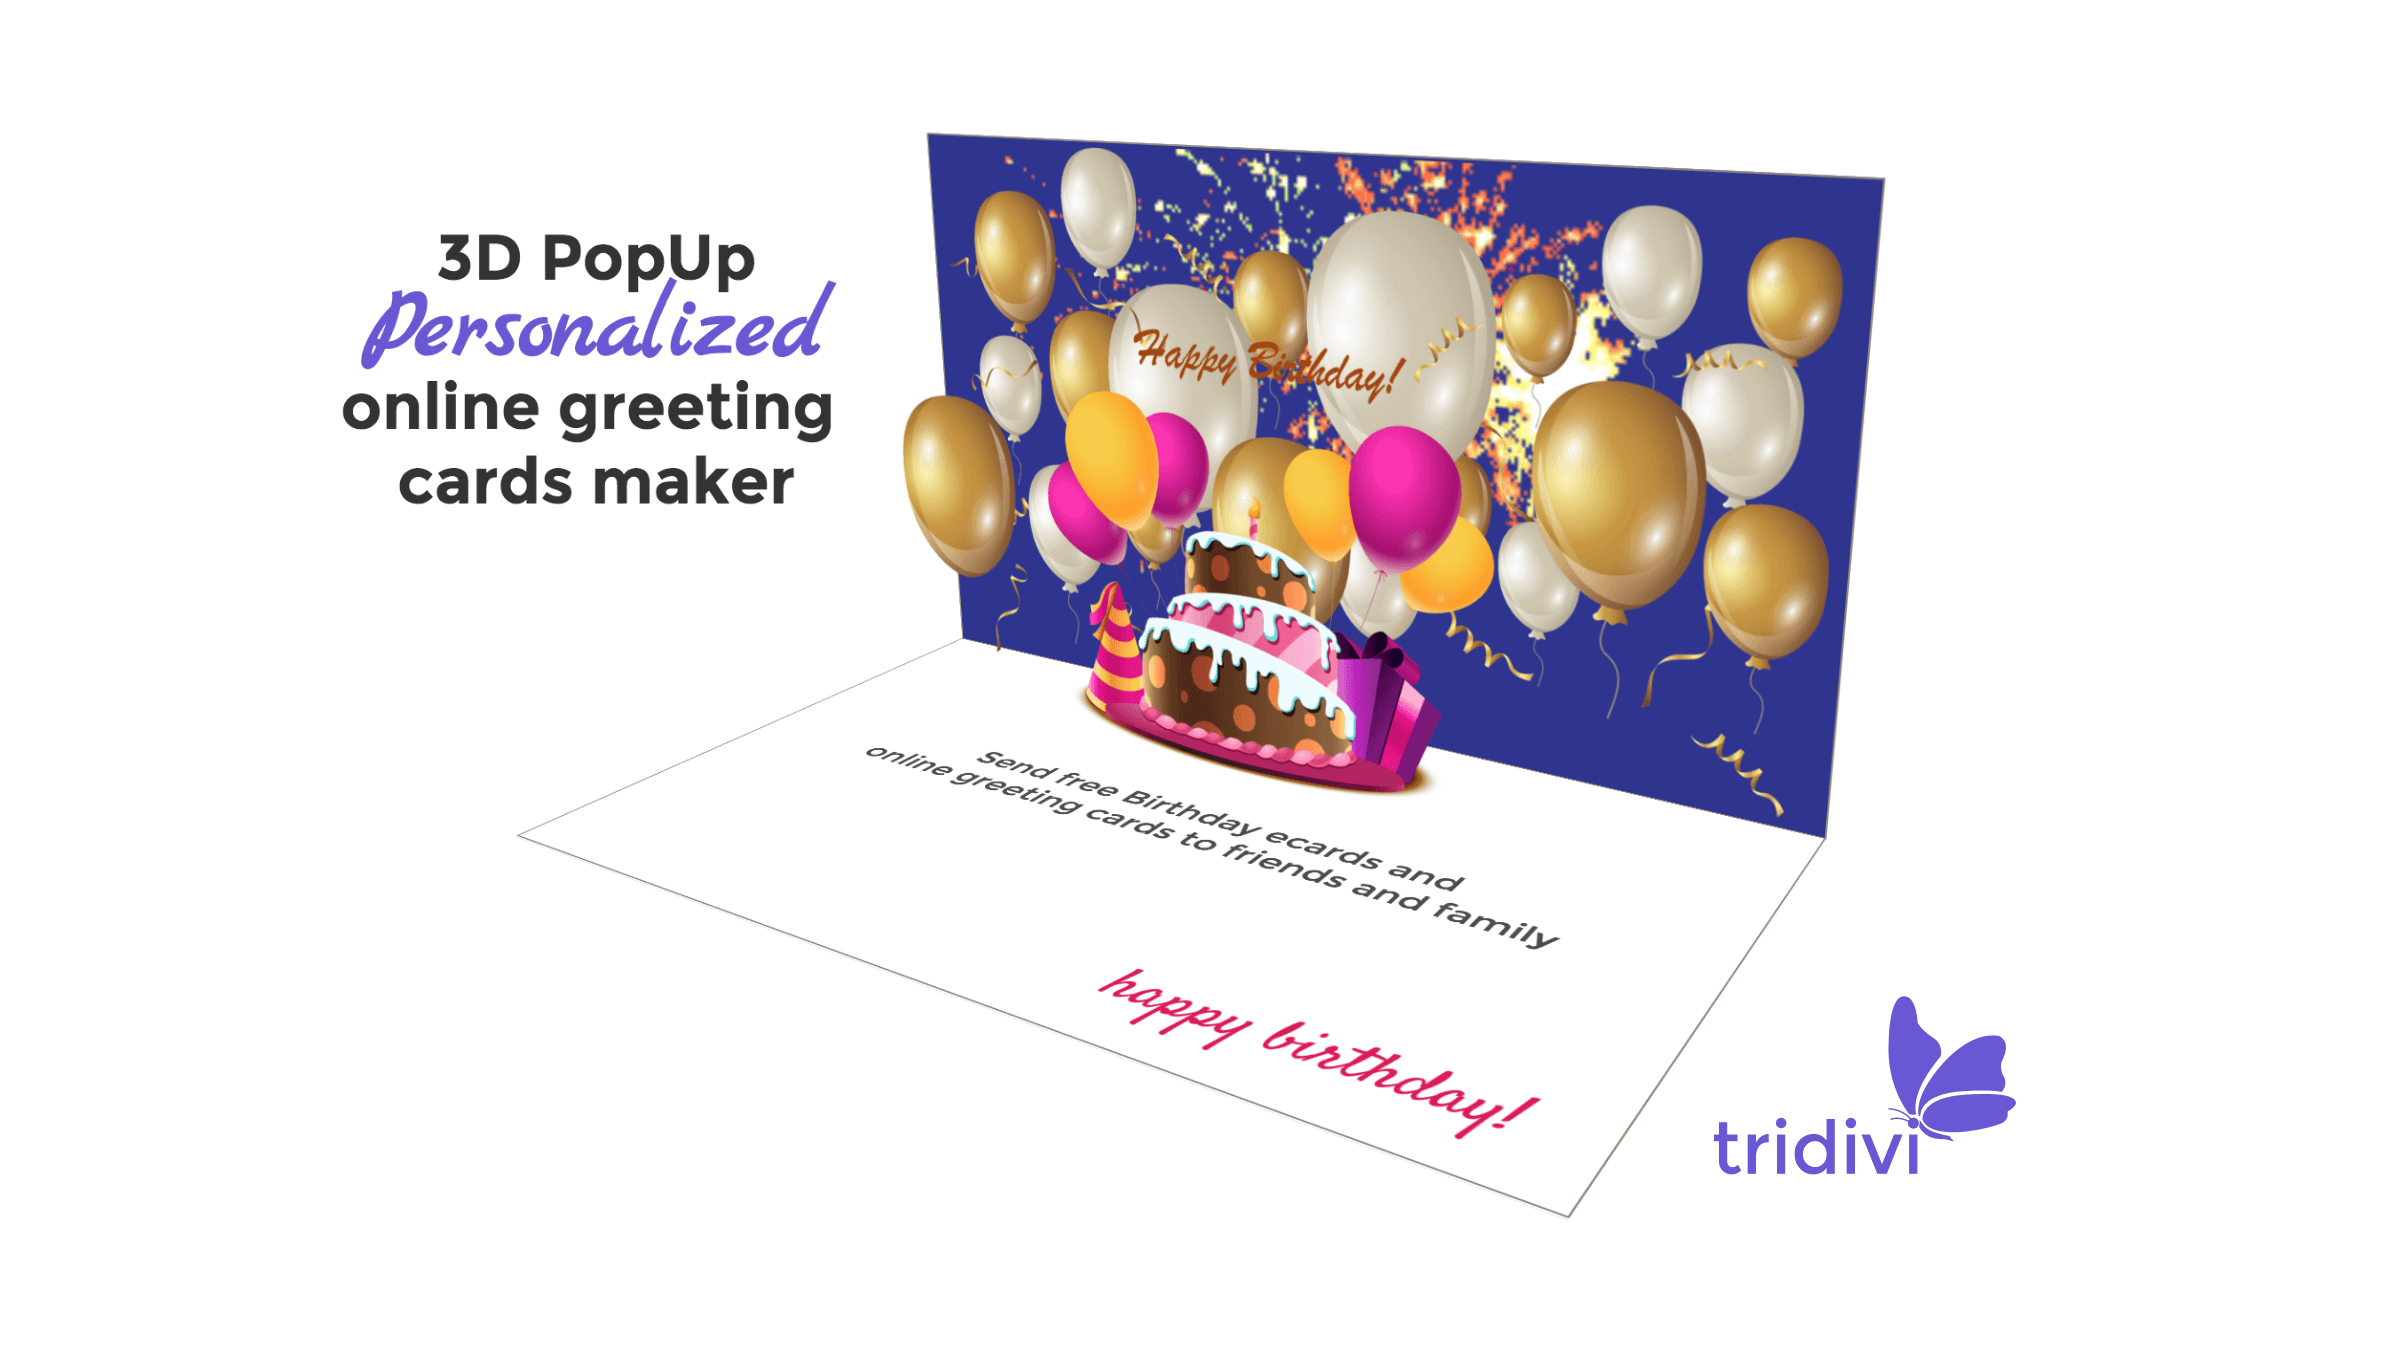 Free 3D Pop Up Online Greeting Card Maker - tridivi™